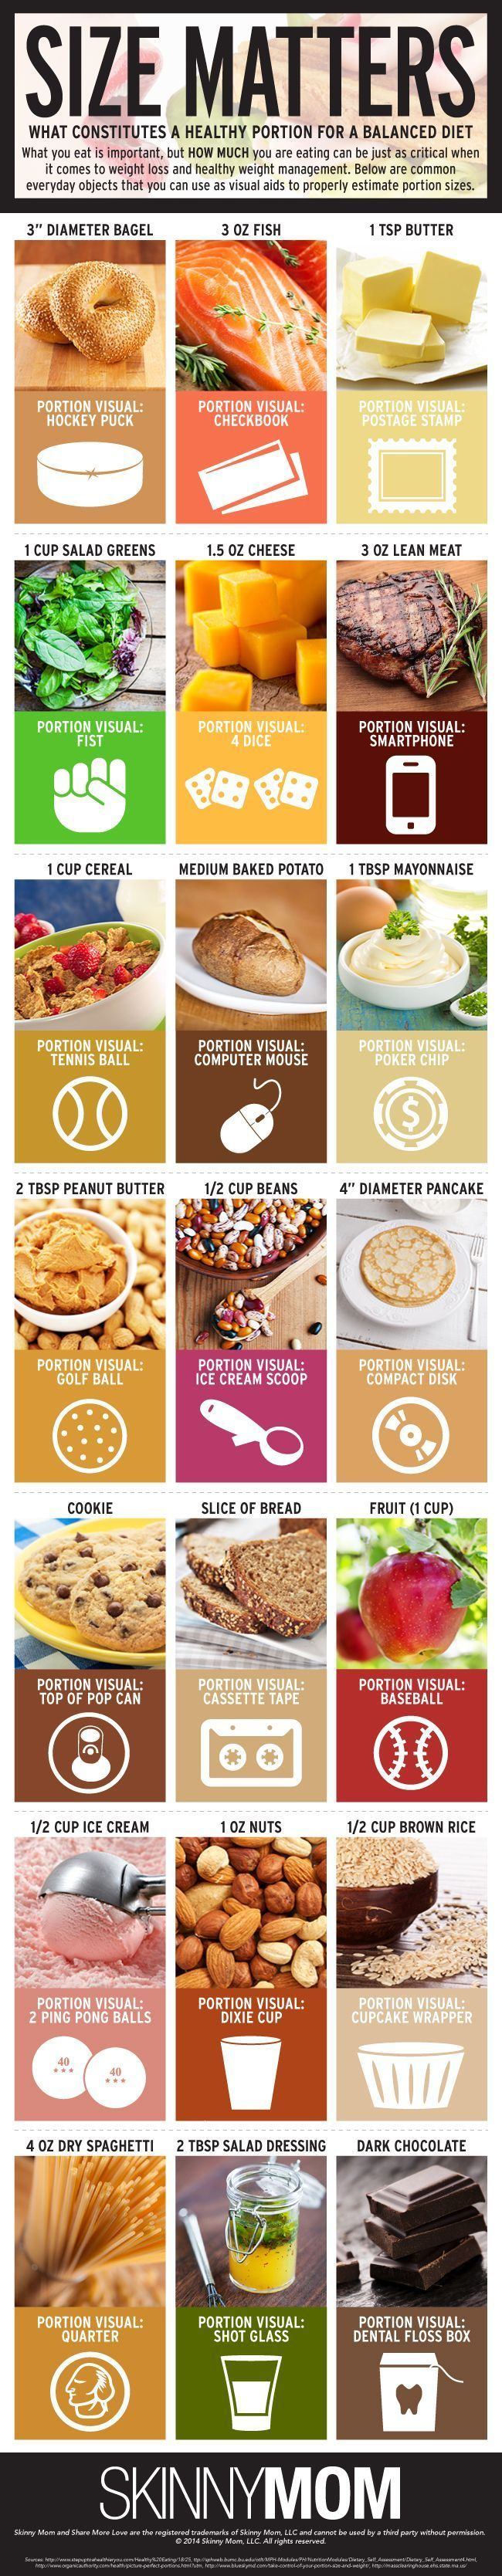 Find This Pin And More On Healthy Eating